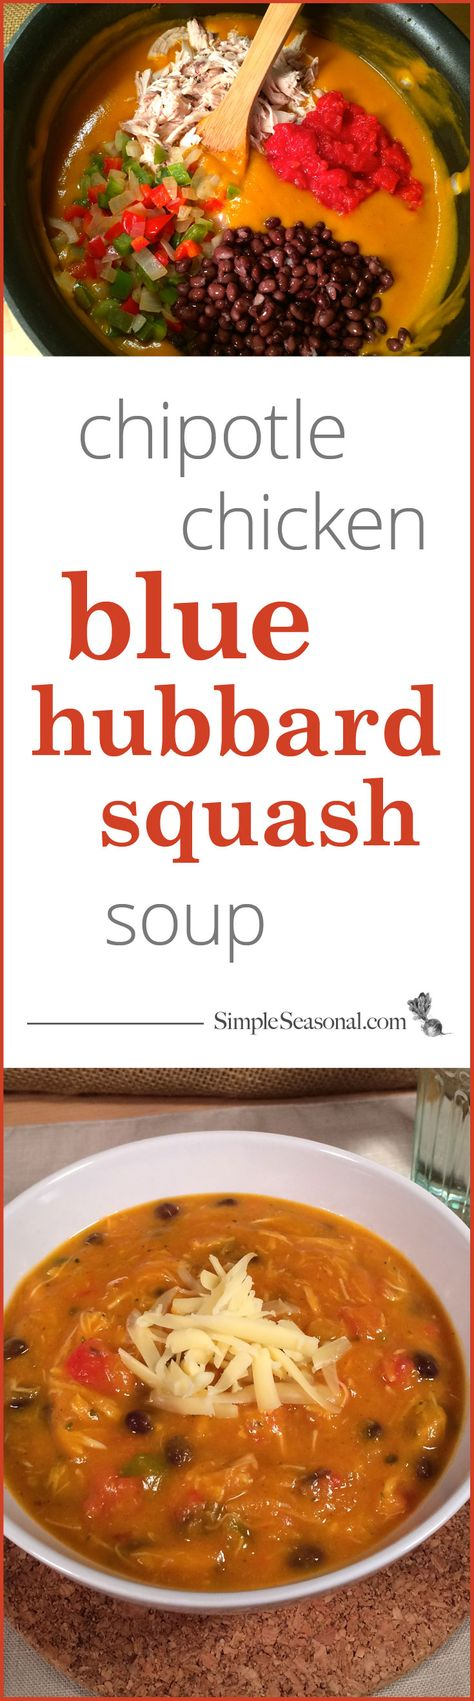 Chipotle Chicken Blue Hubbard Squash Soup - Blue hubbard squash is a delicious fall treat, but many people don't know how to prepare it. This hearty soup combines the sweetness of the blue hubbard squash with spicy chipotle pepper and savory chicken for a wonderful southwest treat. Visit Simple Seasonal for complete instructions and more photos.